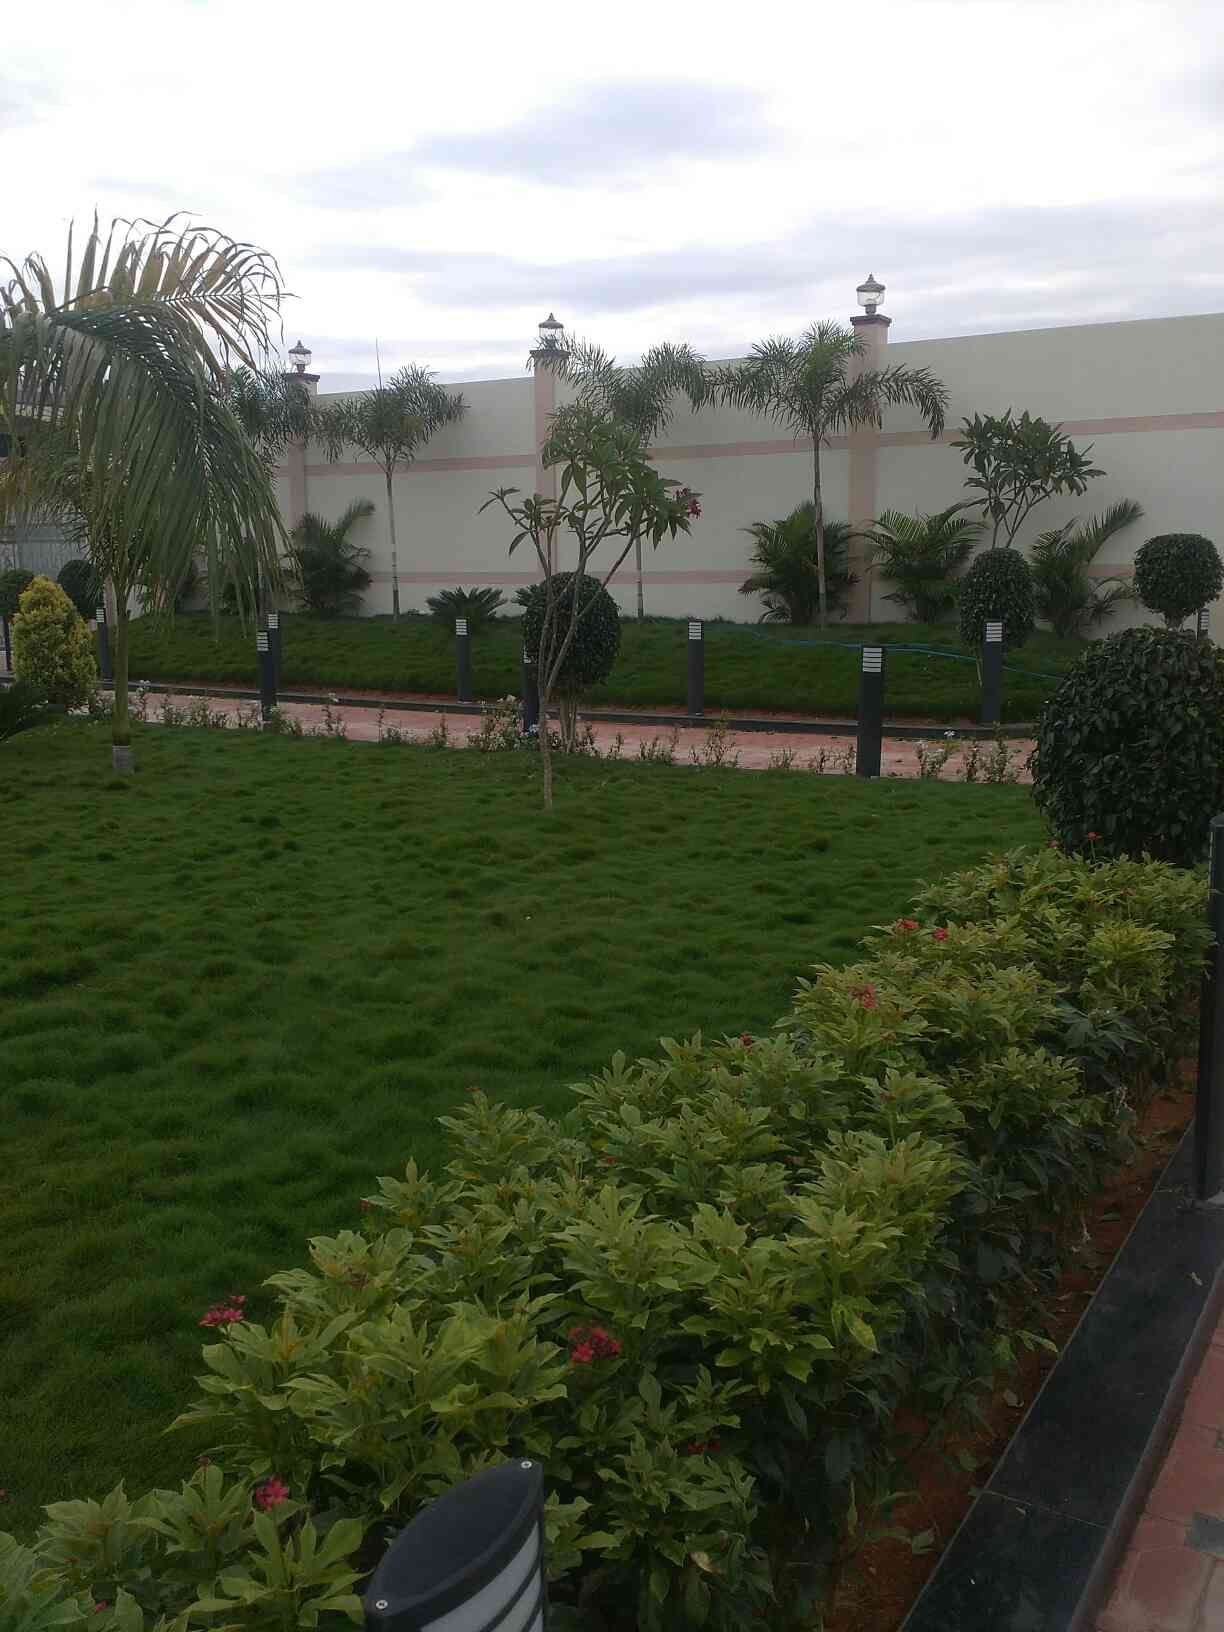 Best landscaping contractor in Bangalore we undertake a number of different landscape services activities such as developing new garden, constructing new layouts for gardens, planting of shrubs, plants and all types of Lawn.